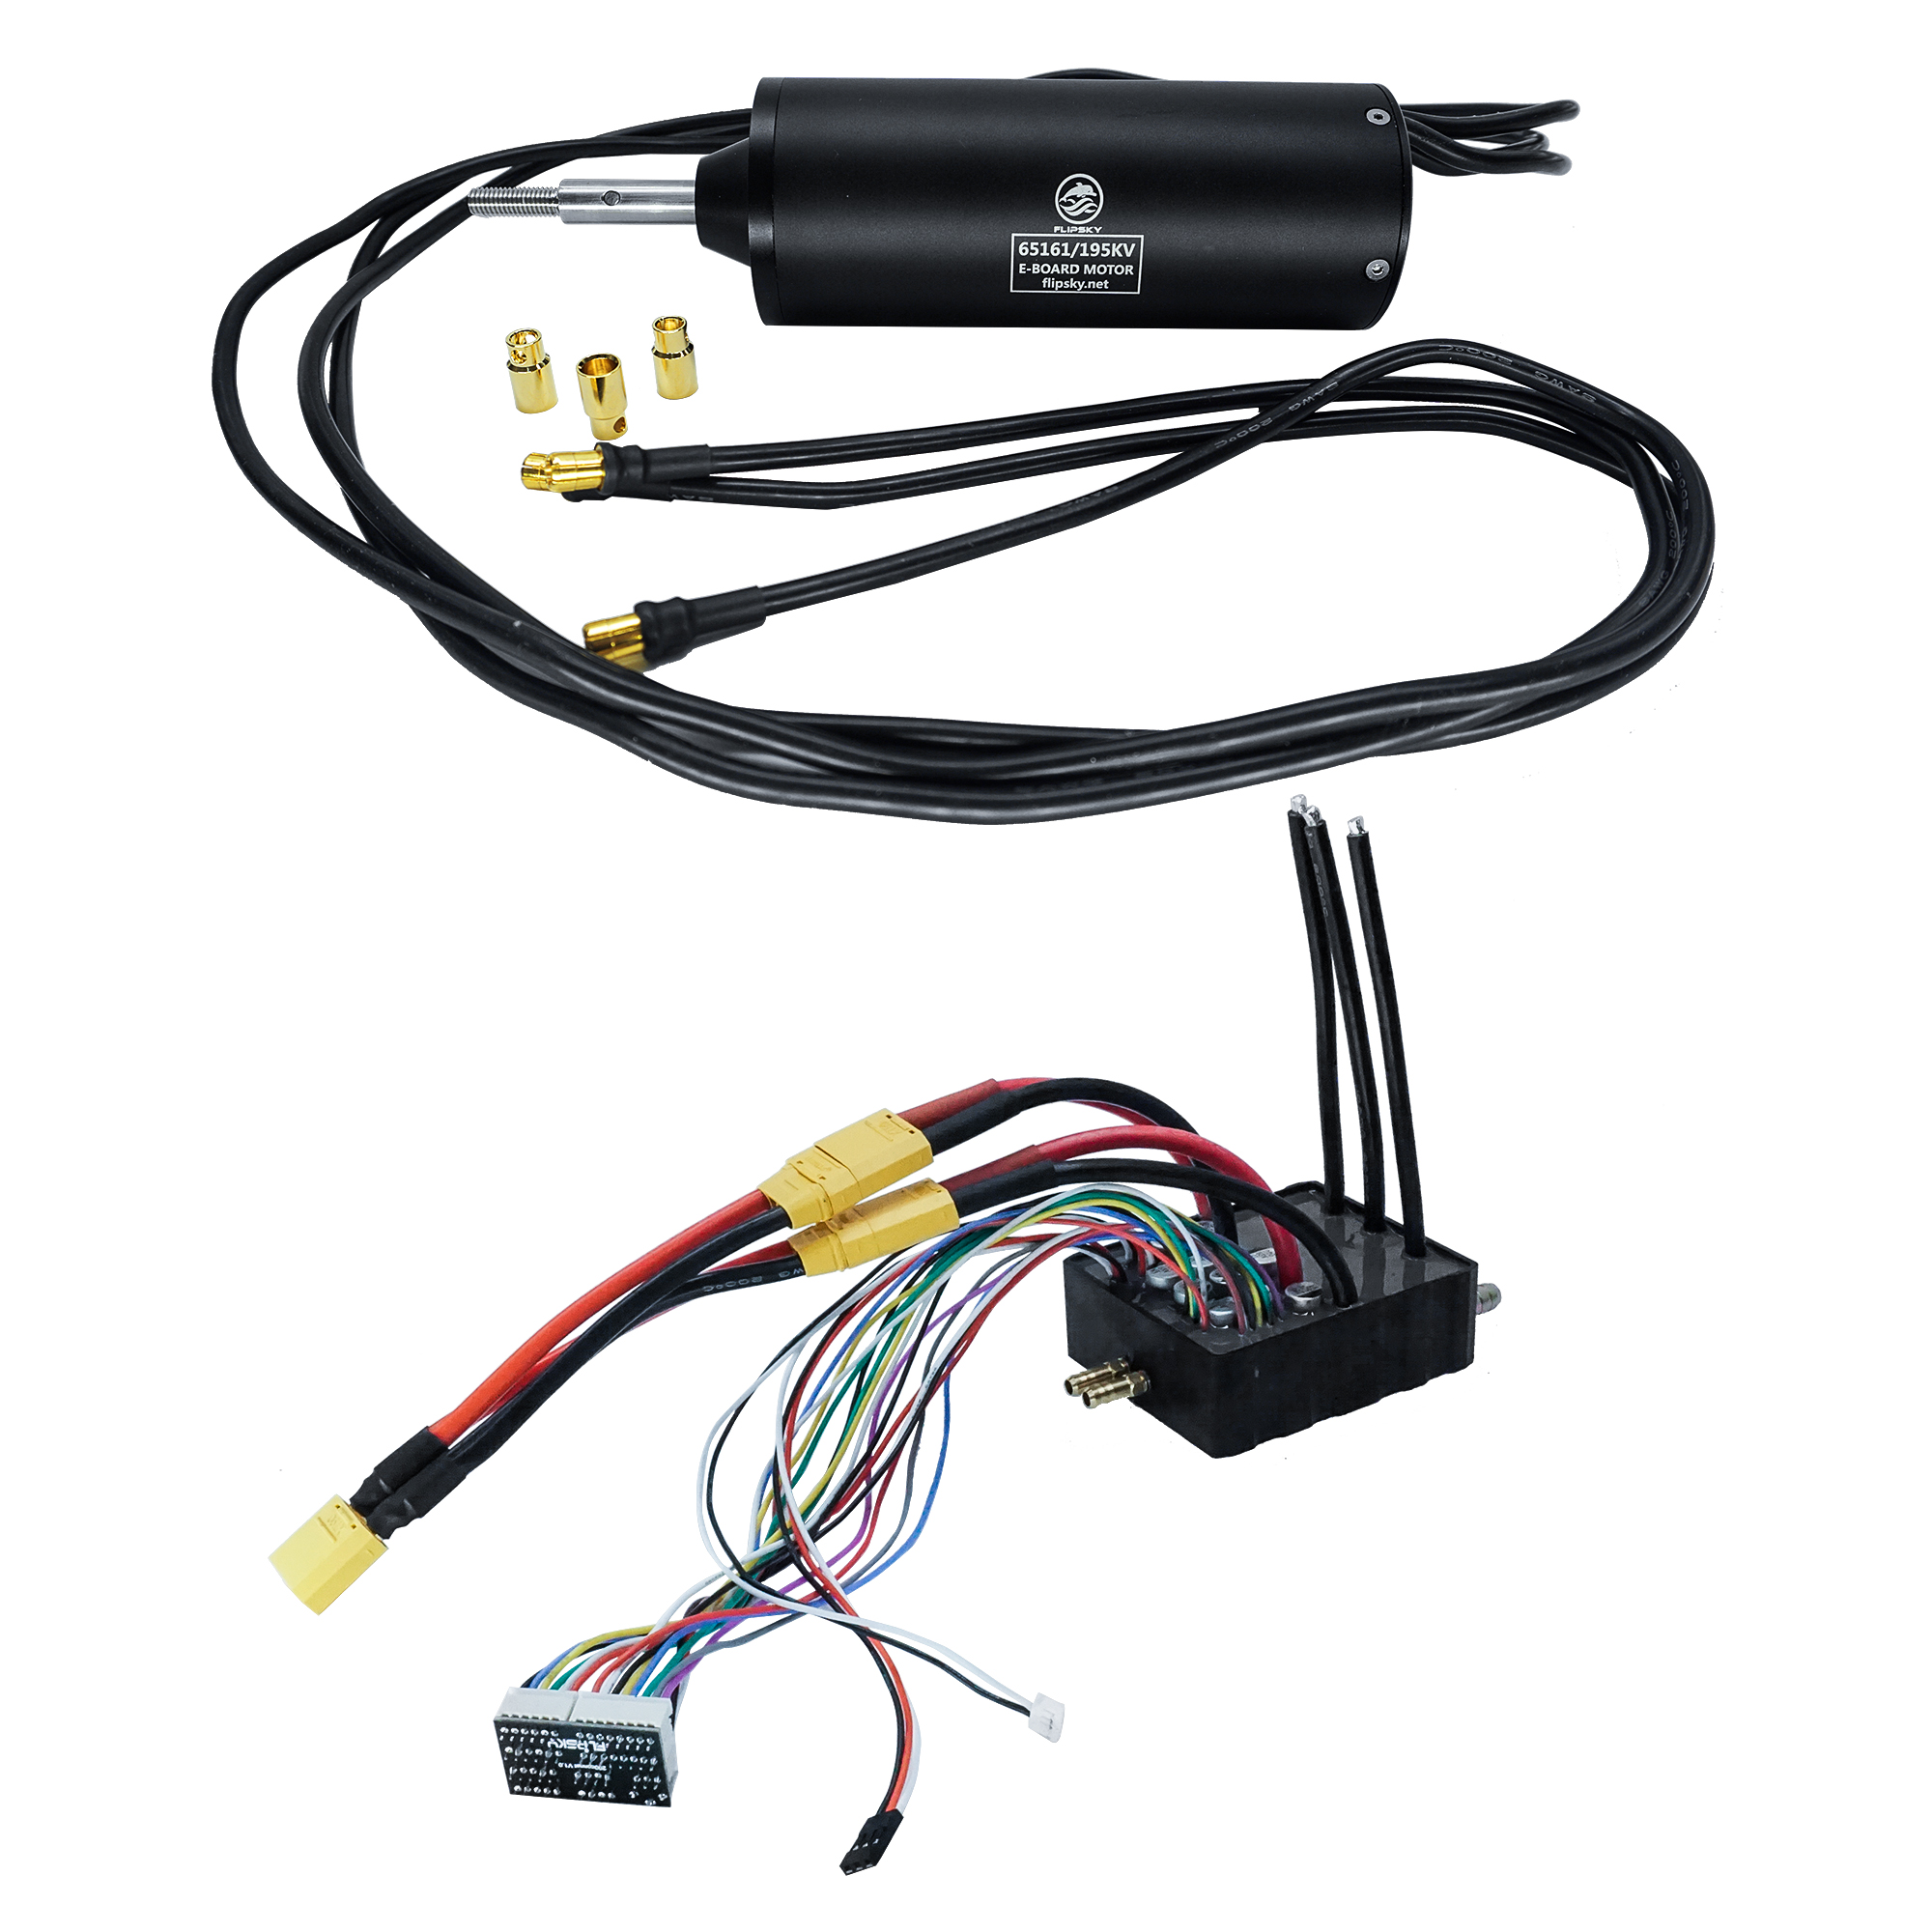 RC Boat Motor + Water Cooling ESC 200A Big Current DIY Complement Waterproof ESC Skateboard/efoil 12s Esc